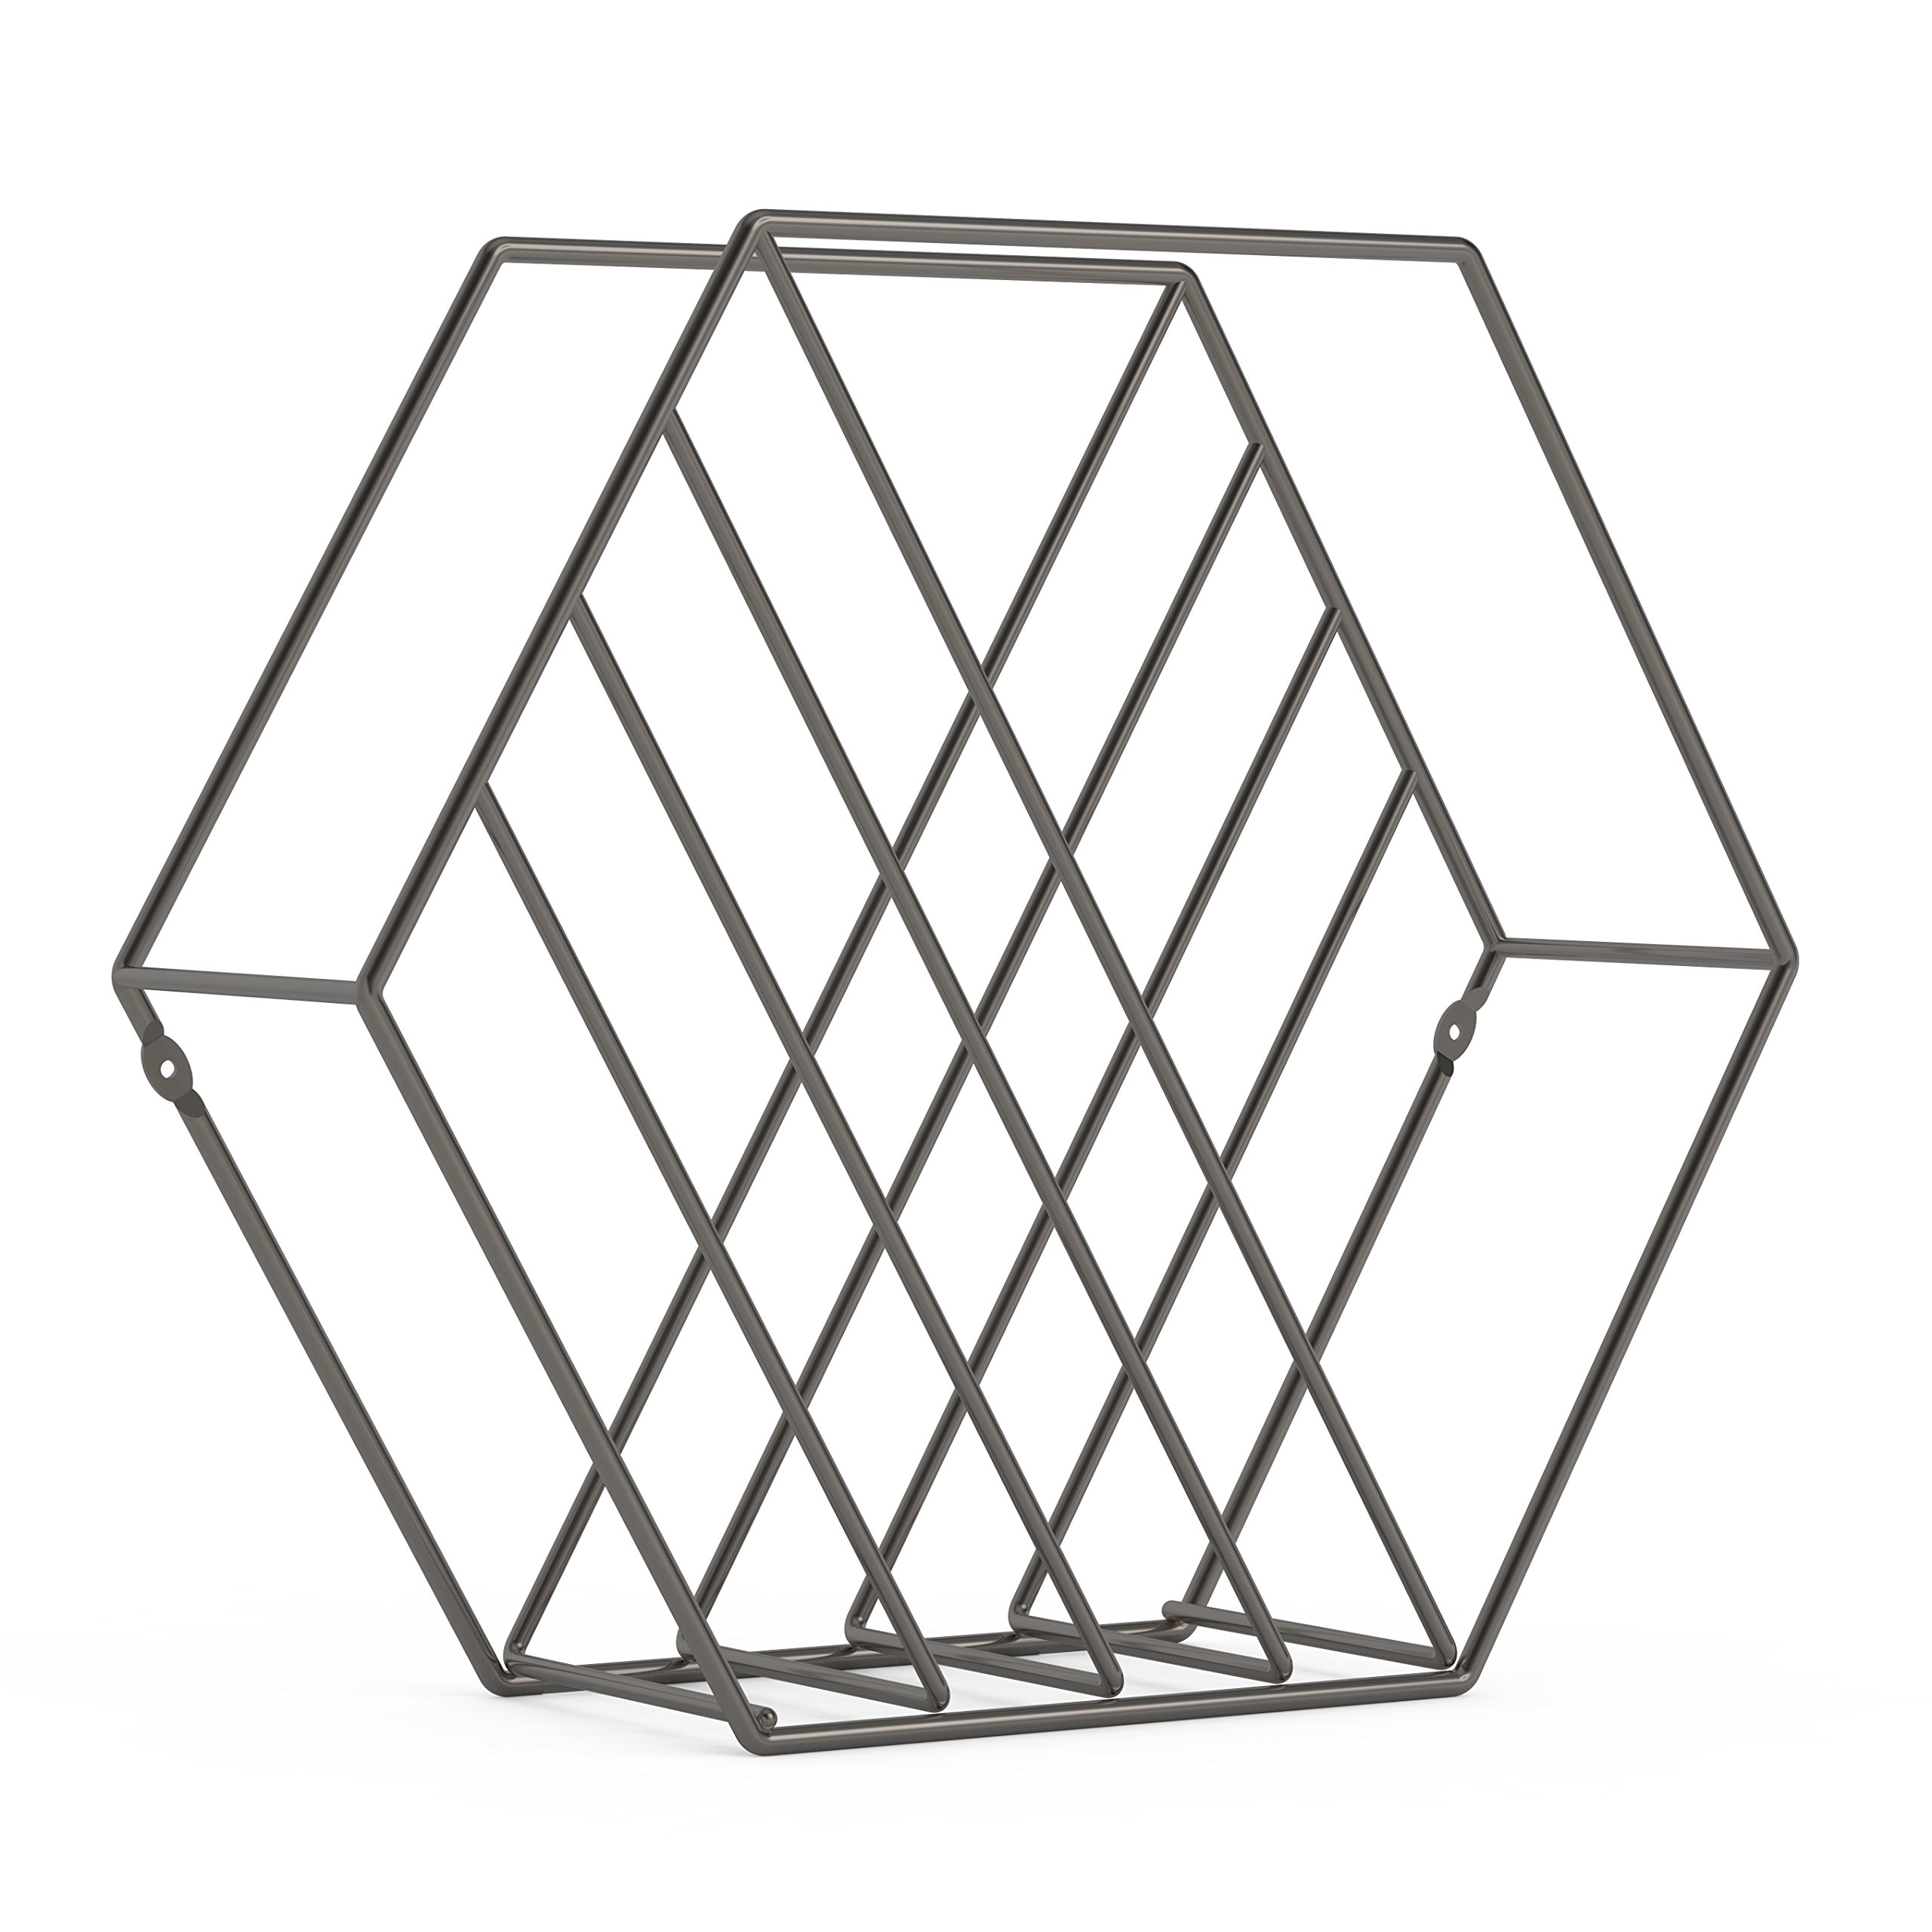 Umbra Zina Magazine Rack & Record Holder, Perfect for Vinyl Record Storage, Stands or Mounts to Wall, Titanium by Umbra